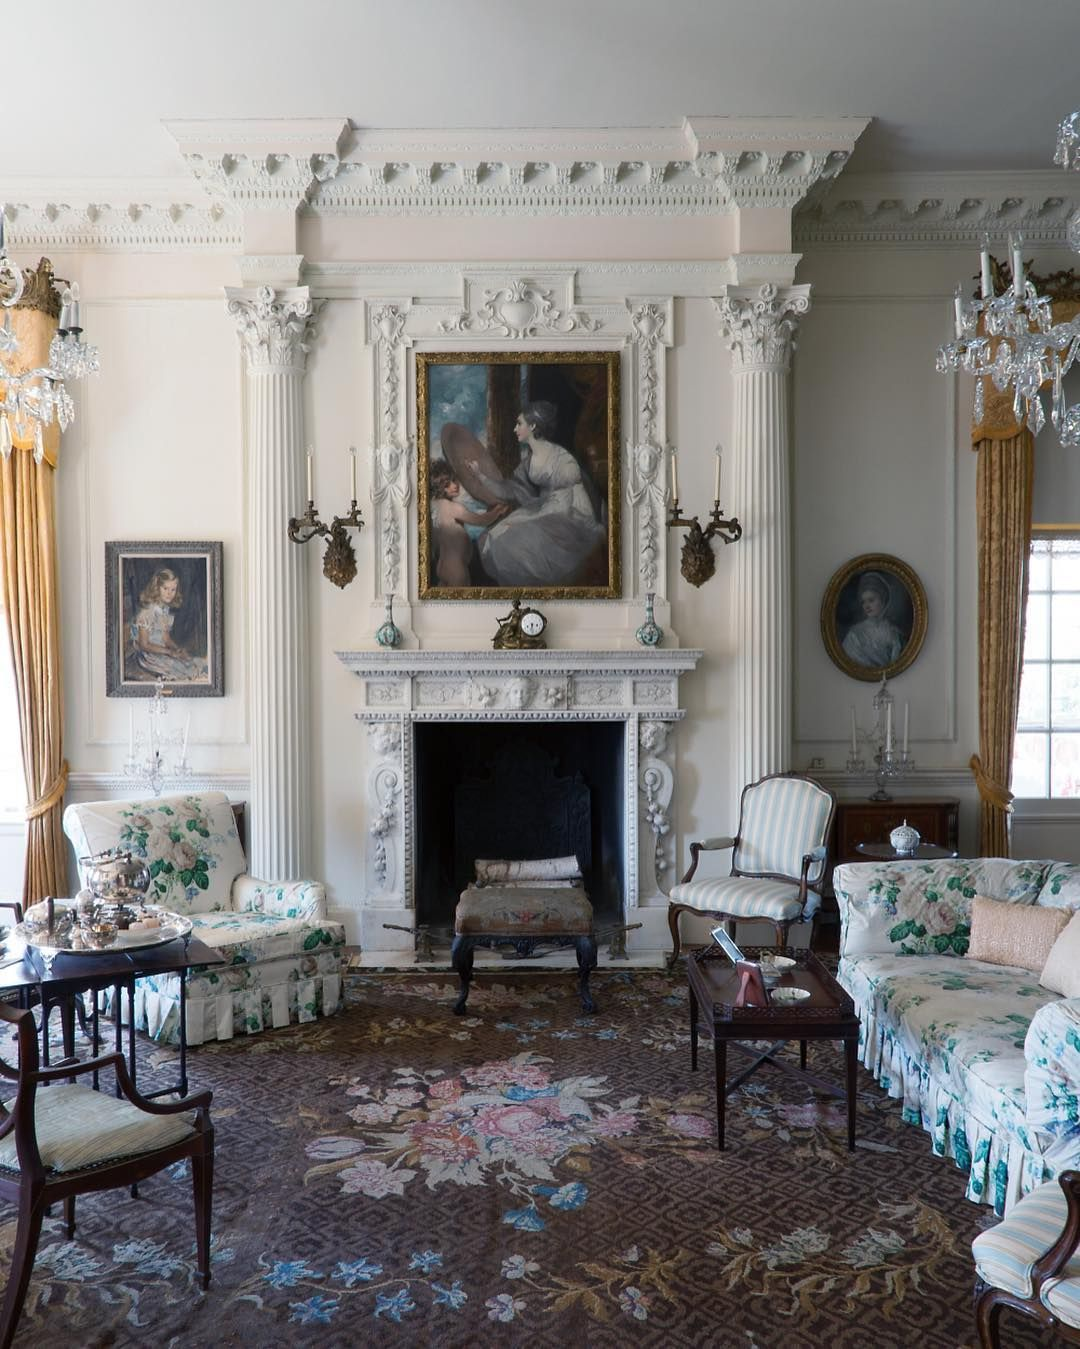 Old Westbury Gardens Interior: Pin By G L On Home Designs In 2019